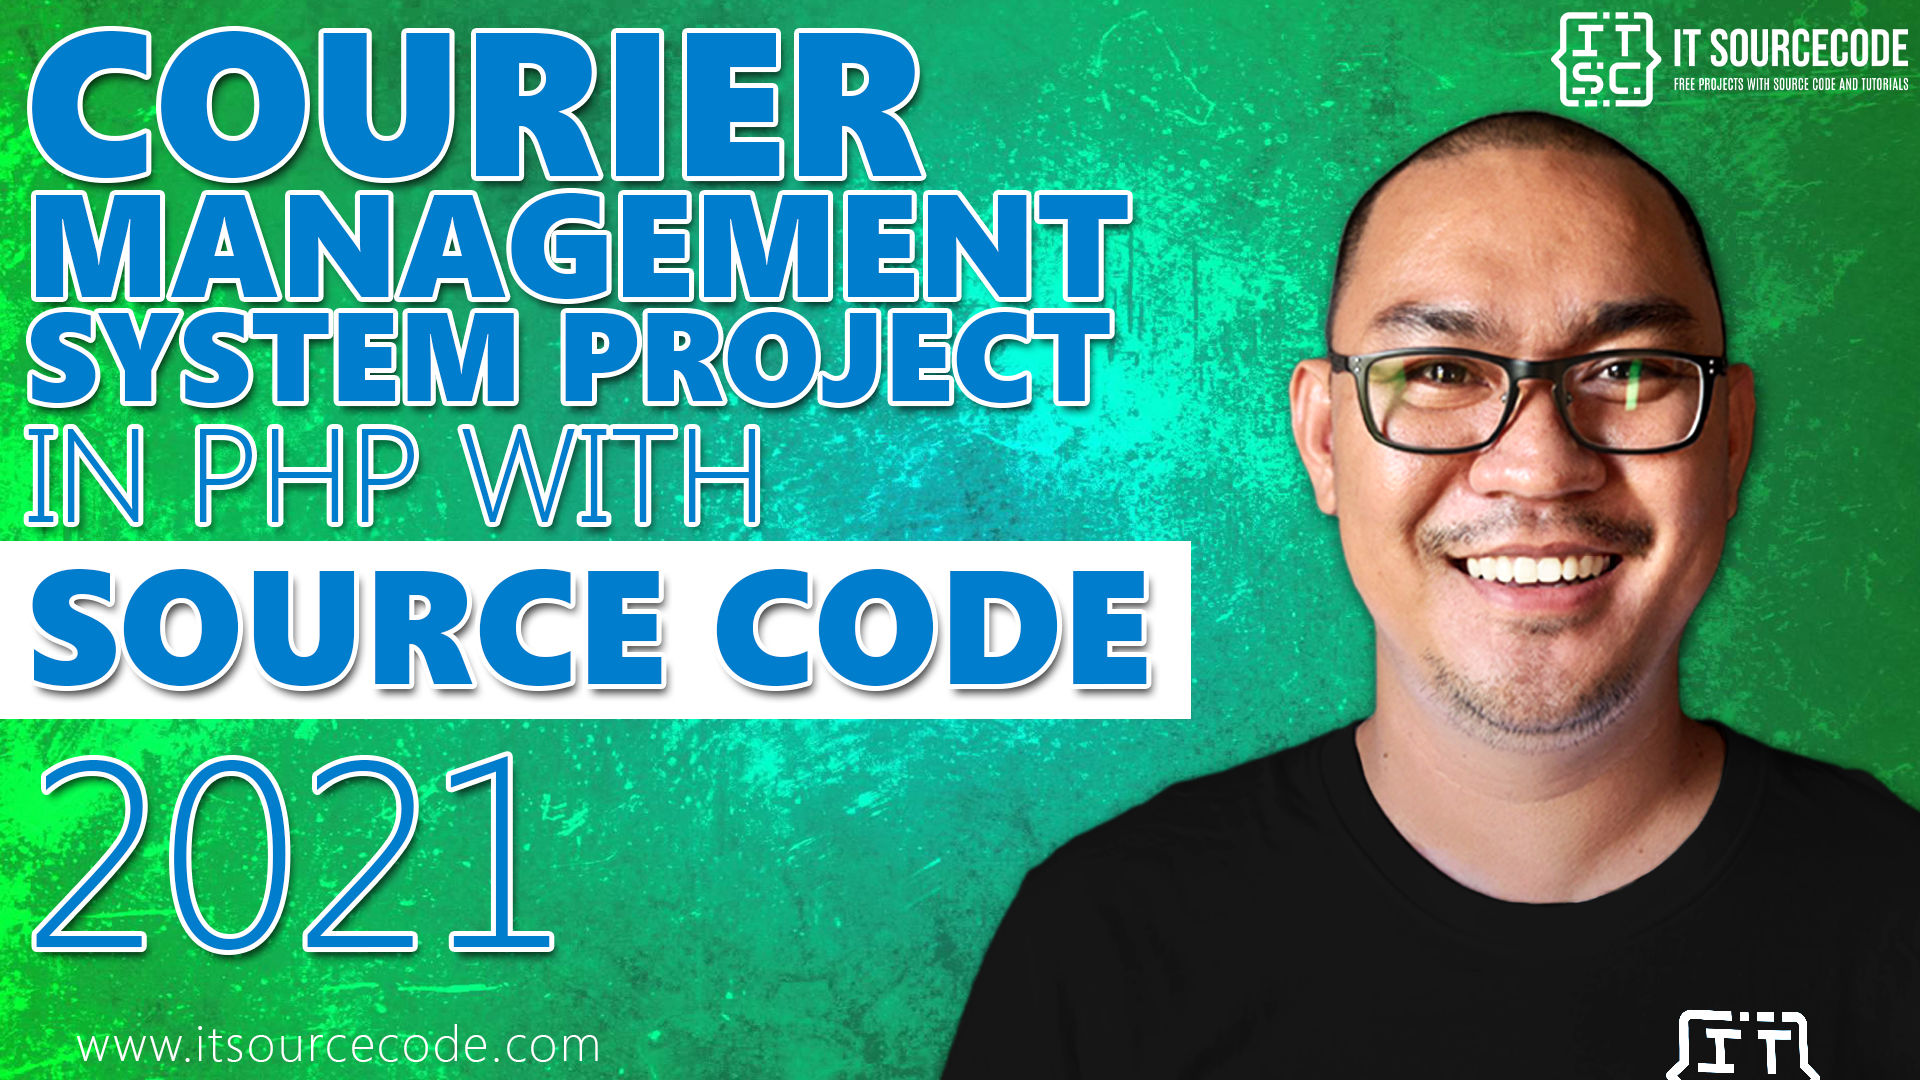 Courier Management System Project in PHP with Source Code 2021